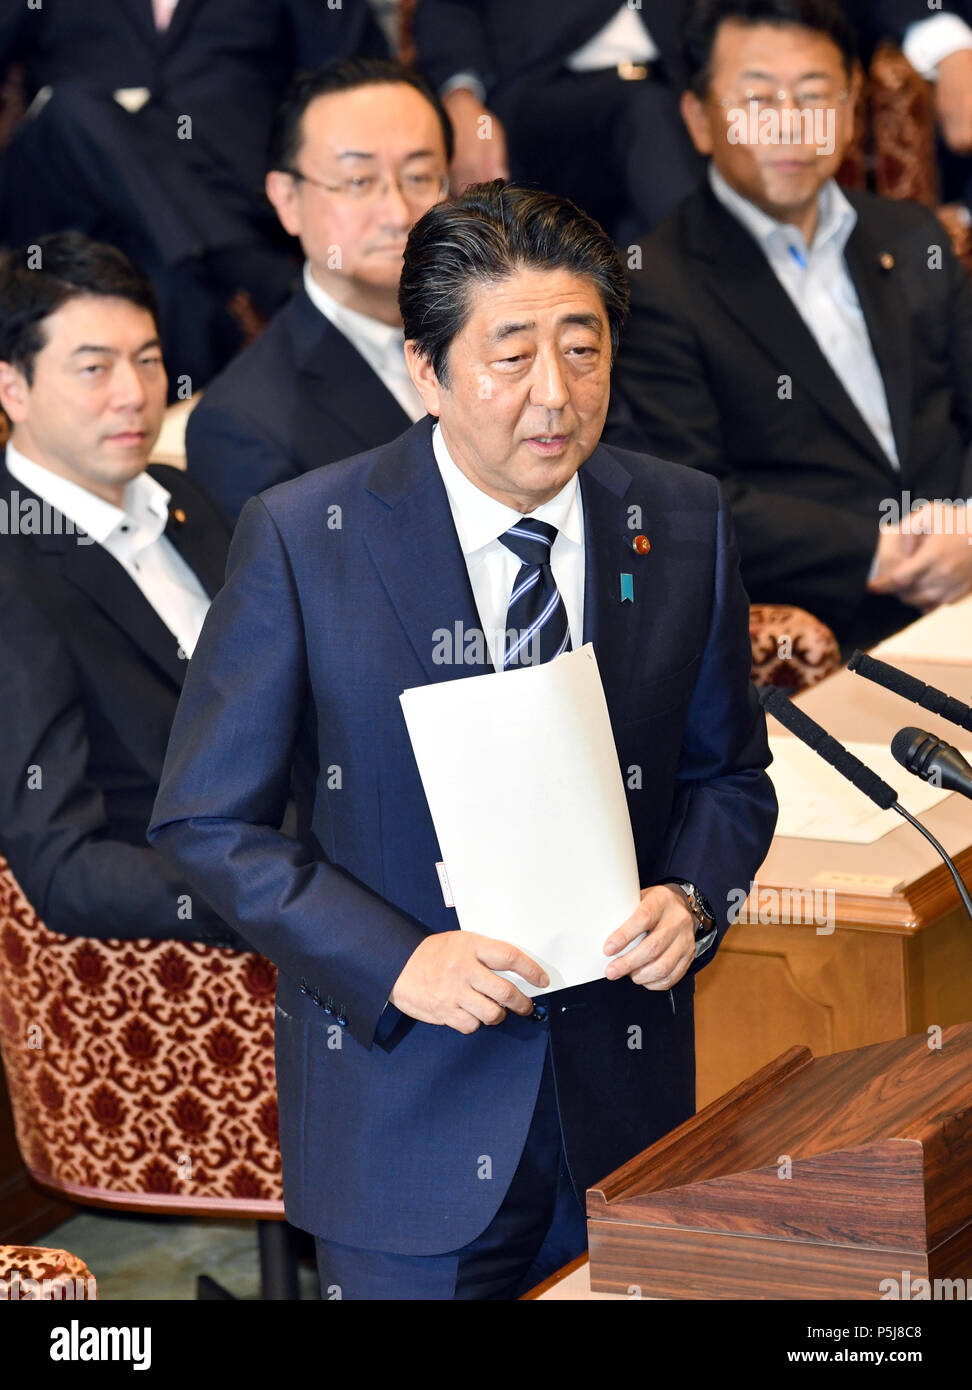 Tokyo, Japan. 27th June, 2018. Japan Prime Minister Shinzo Abe answers Yukio Edano, leader of the Constitutional Democratic Party of Japan, during a Diet question time of the Joint Review Board of the Committee on Fundamental National Policies in Tokyo on Wednesday, June 27, 2018. Credit: Natsuki Sakai/AFLO/Alamy Live News - Stock Image